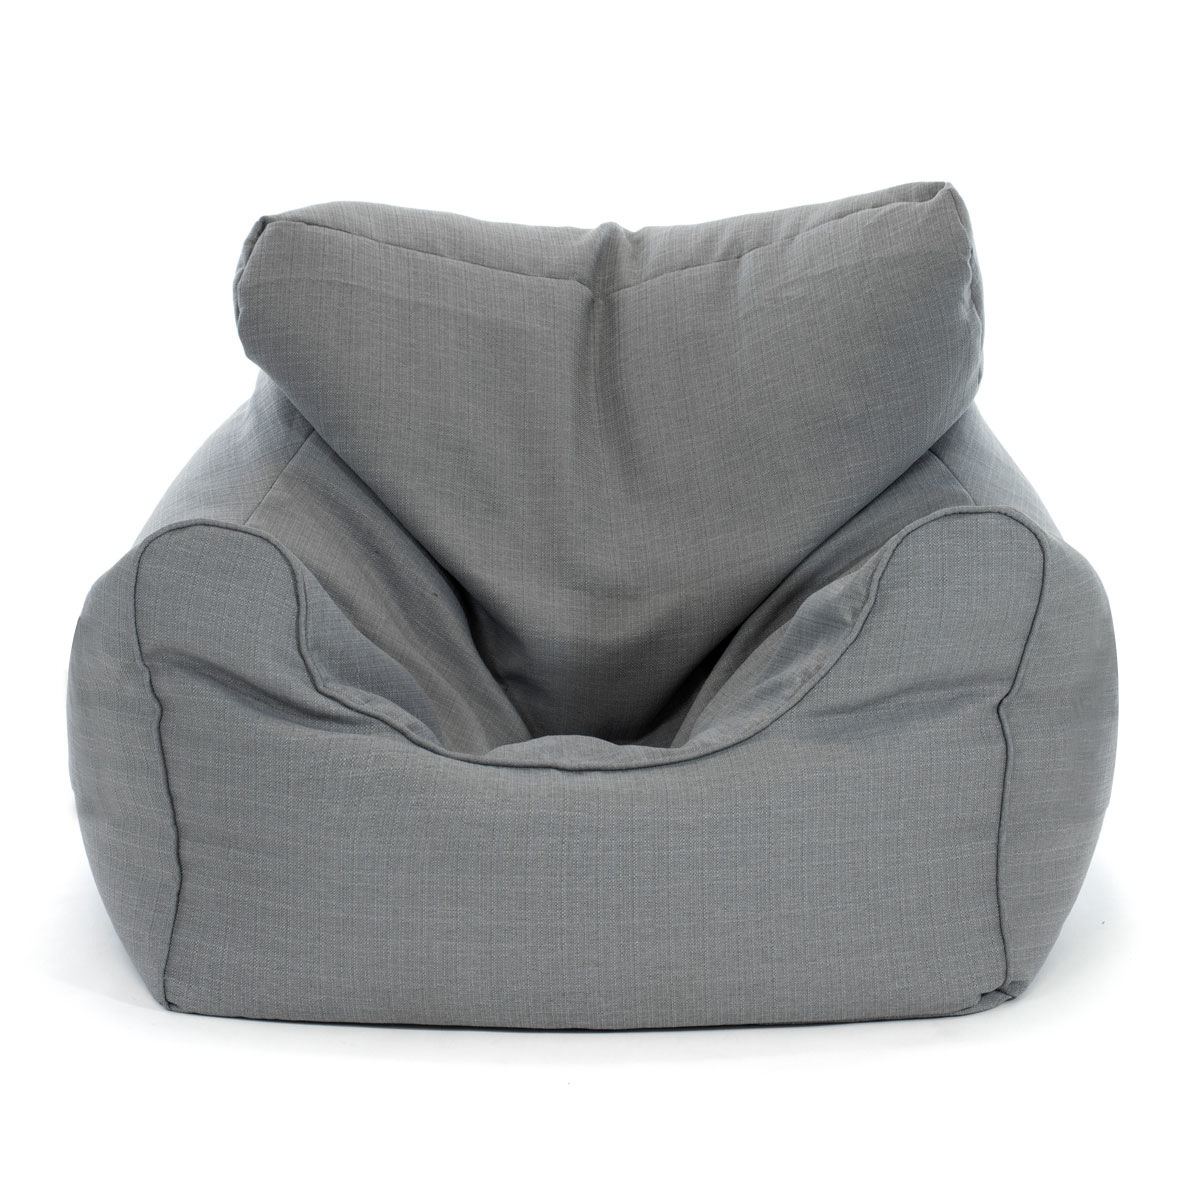 Xl Bean Bag Chair Extra Large Grey Bean Bag Chair Kmartnz